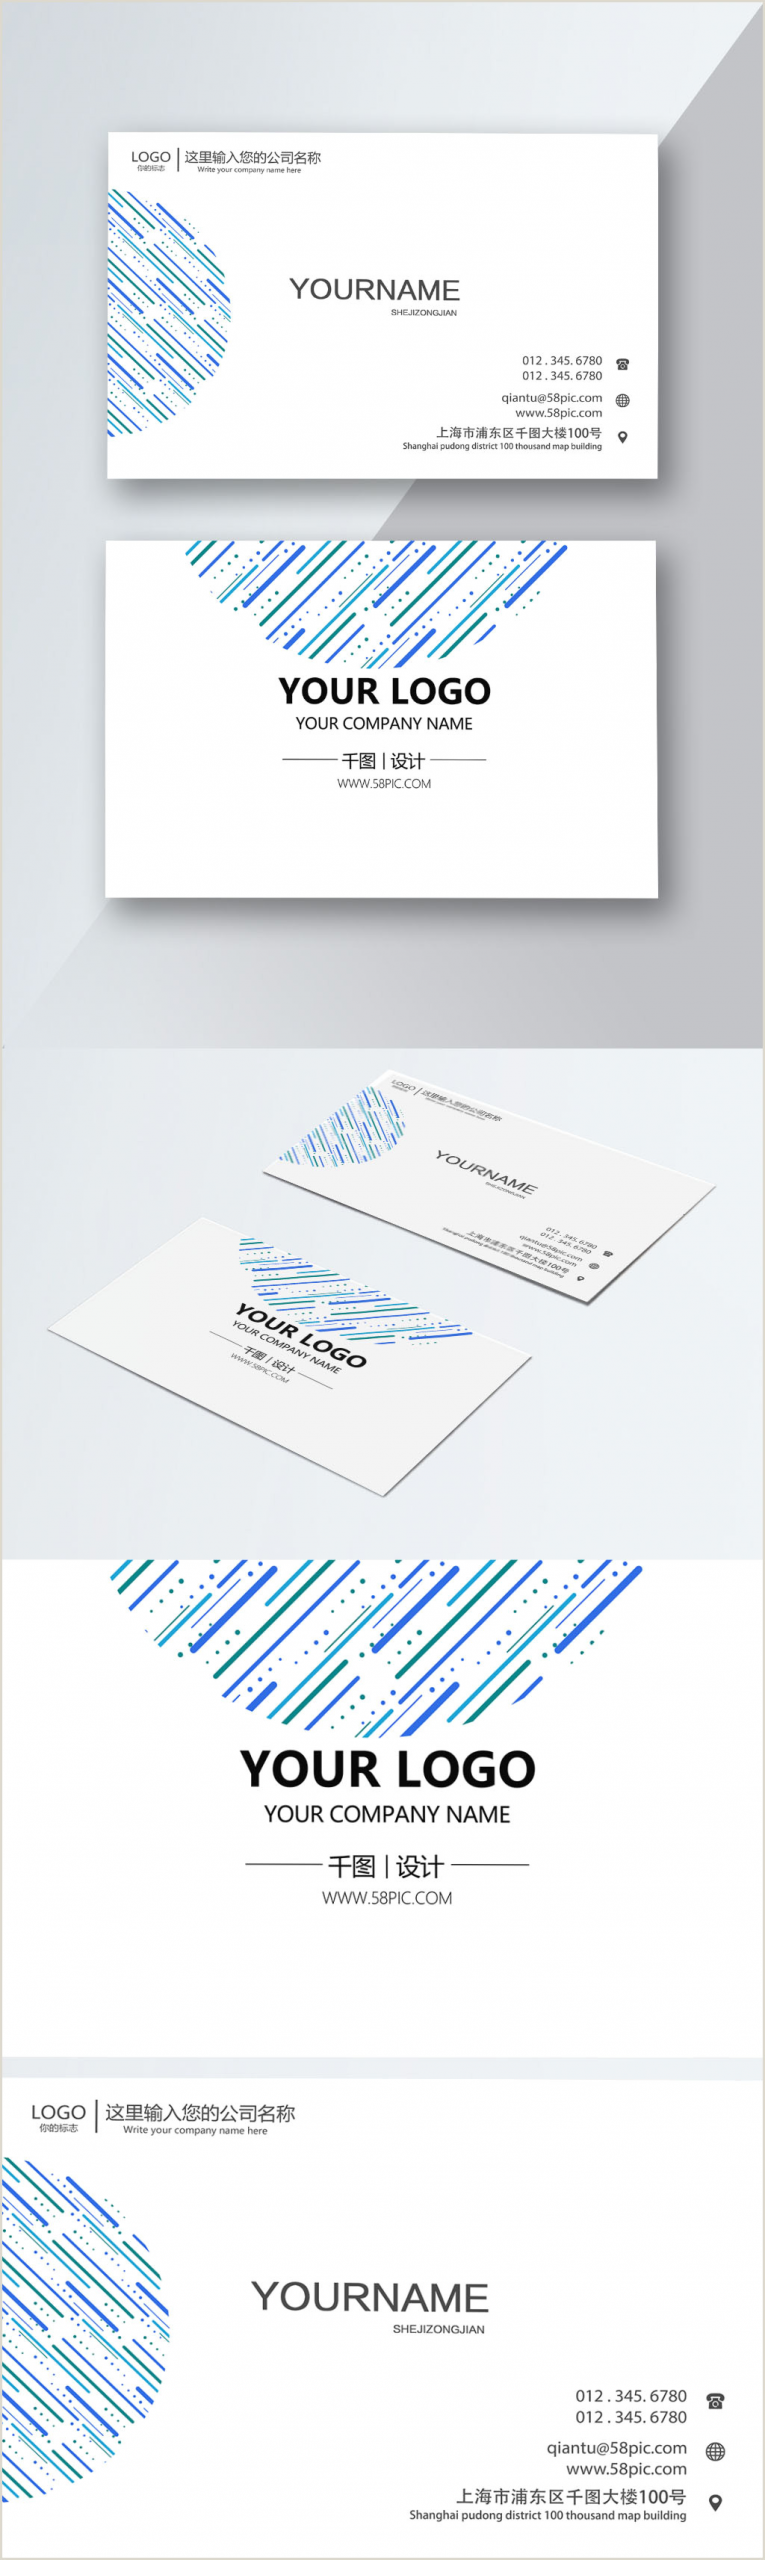 Hip Business Cards High End Business Cards Template Image Picture Free